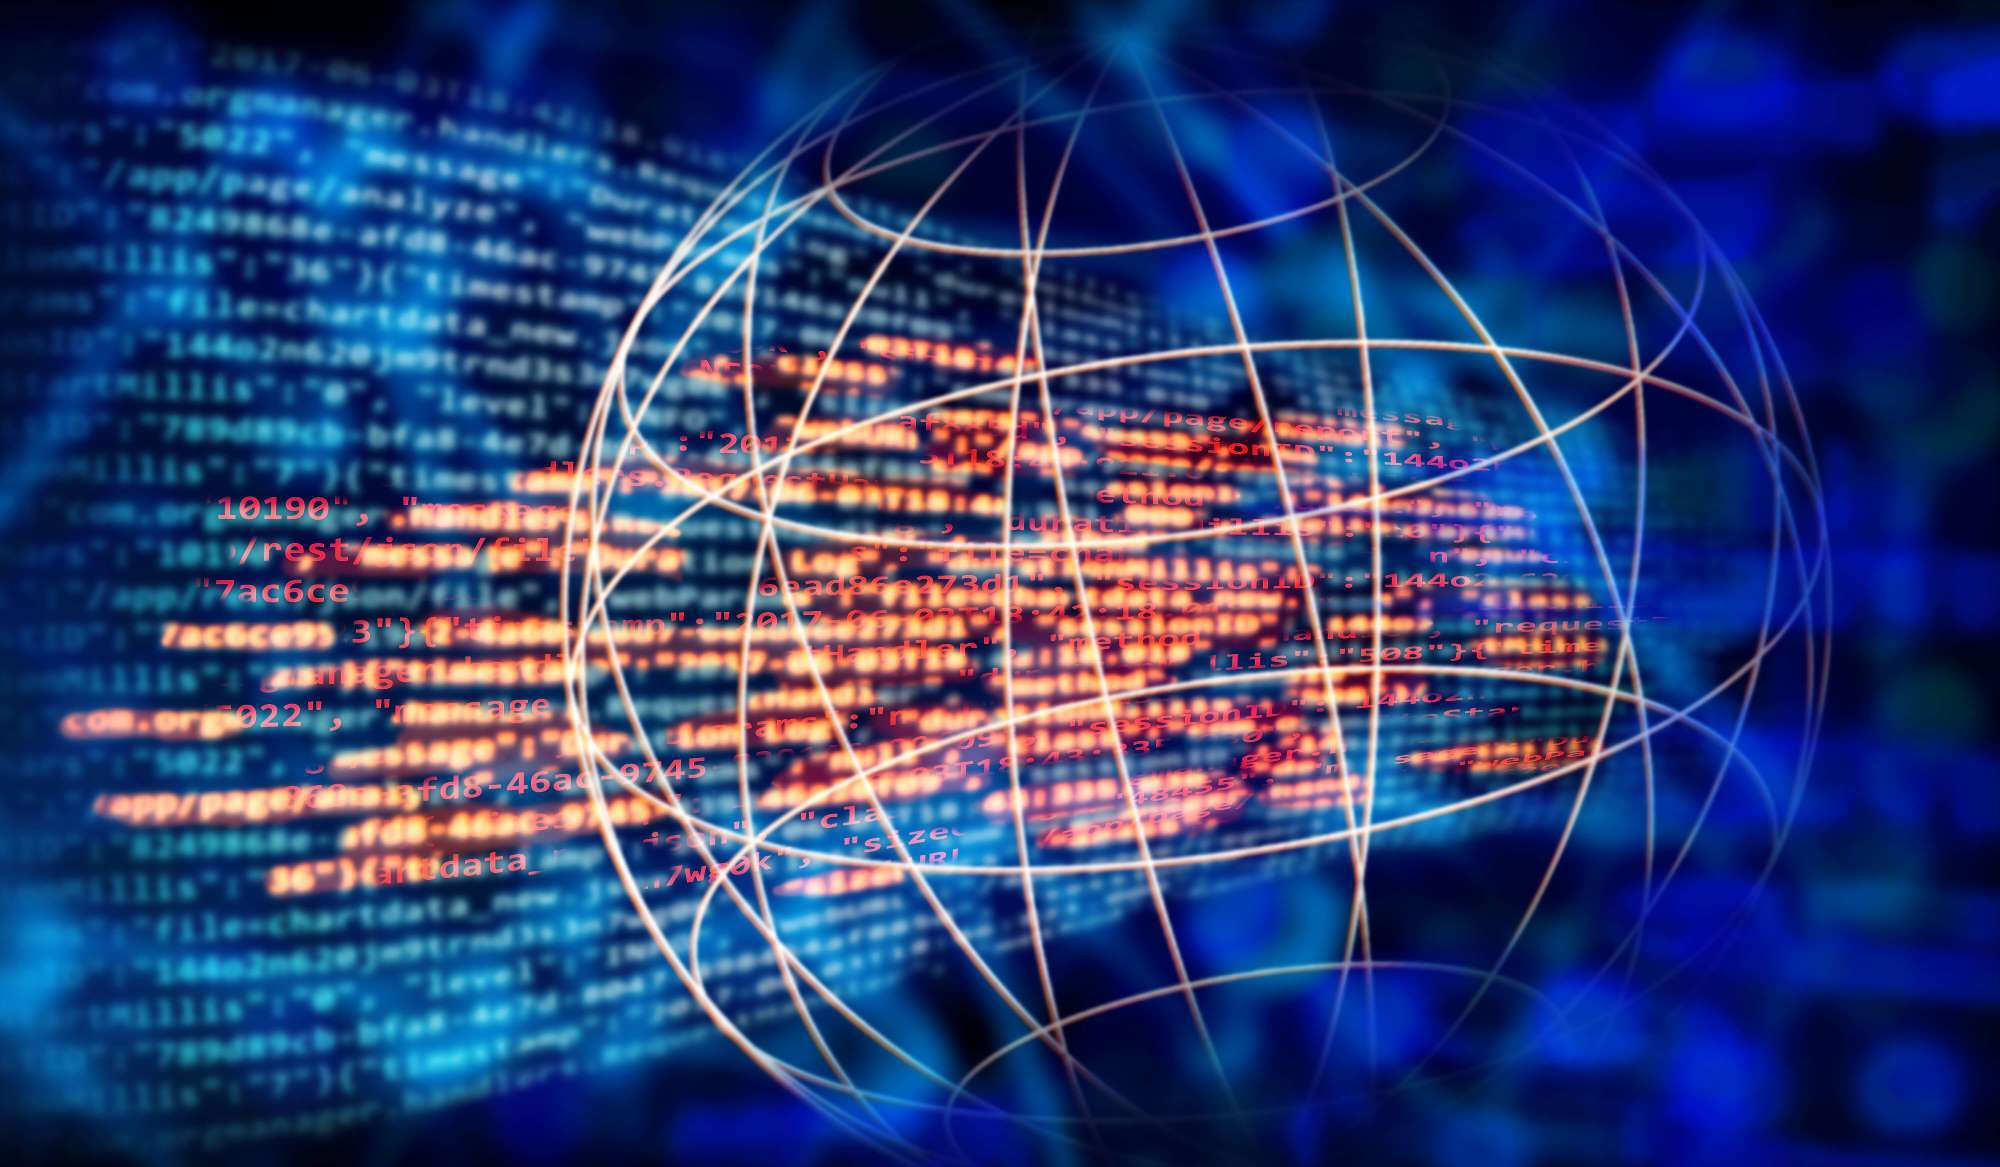 Digital enterprises need a well-planned network infrastructure